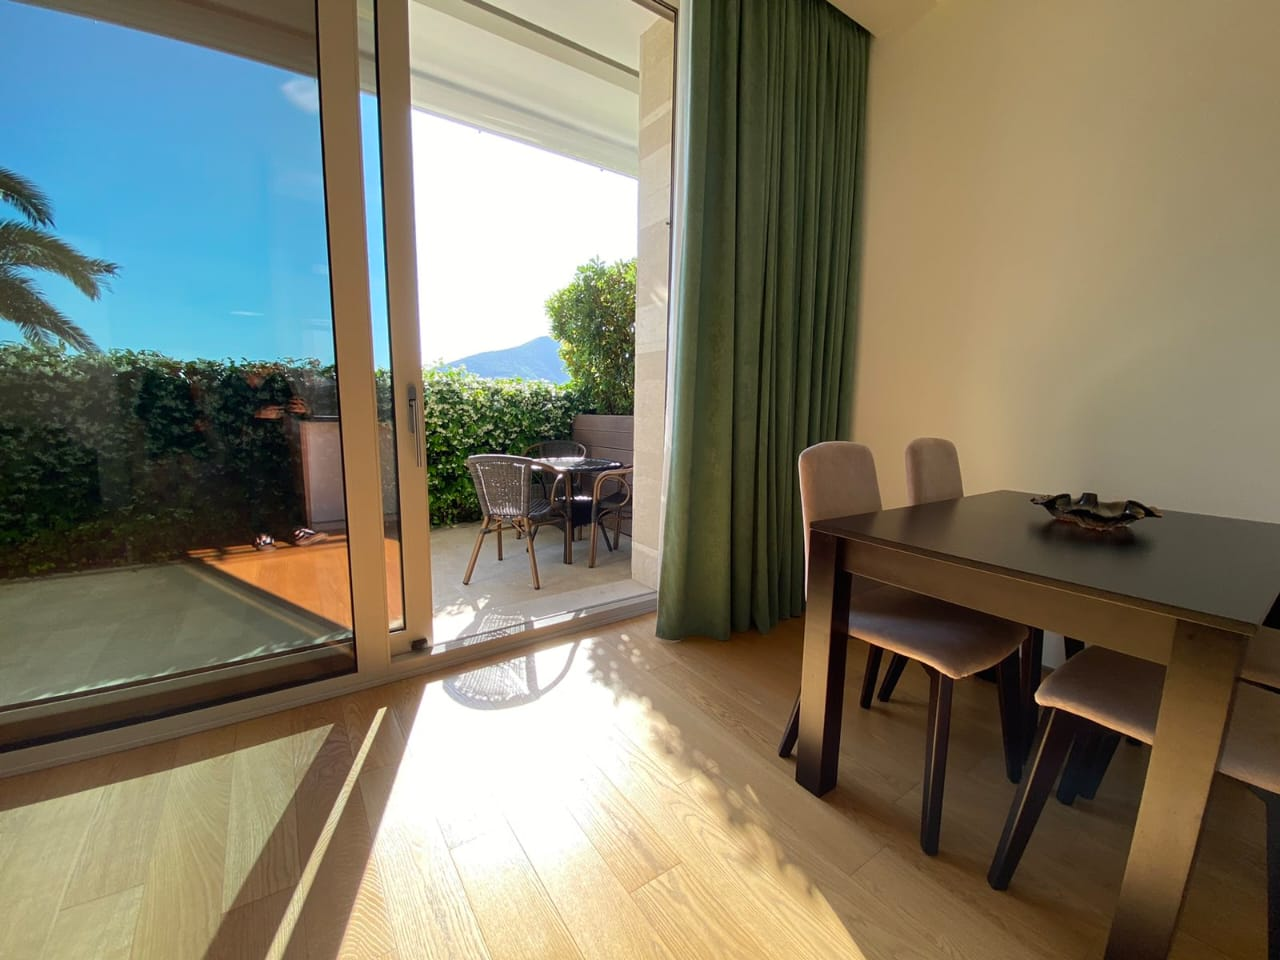 Apartment with sea view in Budva, Dukley Gardens complex